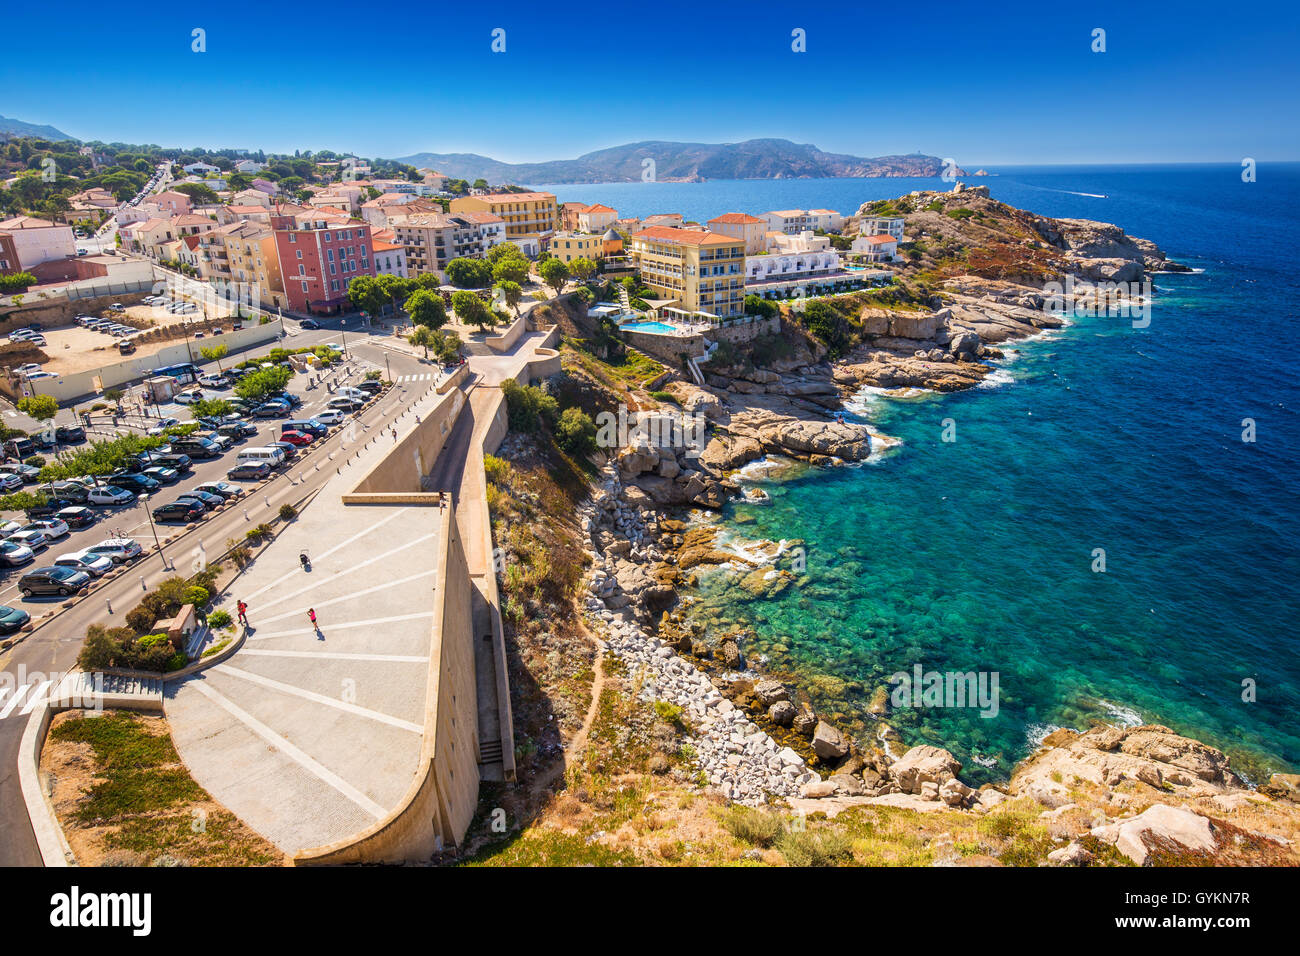 View to beautiful Corsica coastline and historic houses in Calvi old town with turquoise clear ocean water, Corsica, - Stock Image